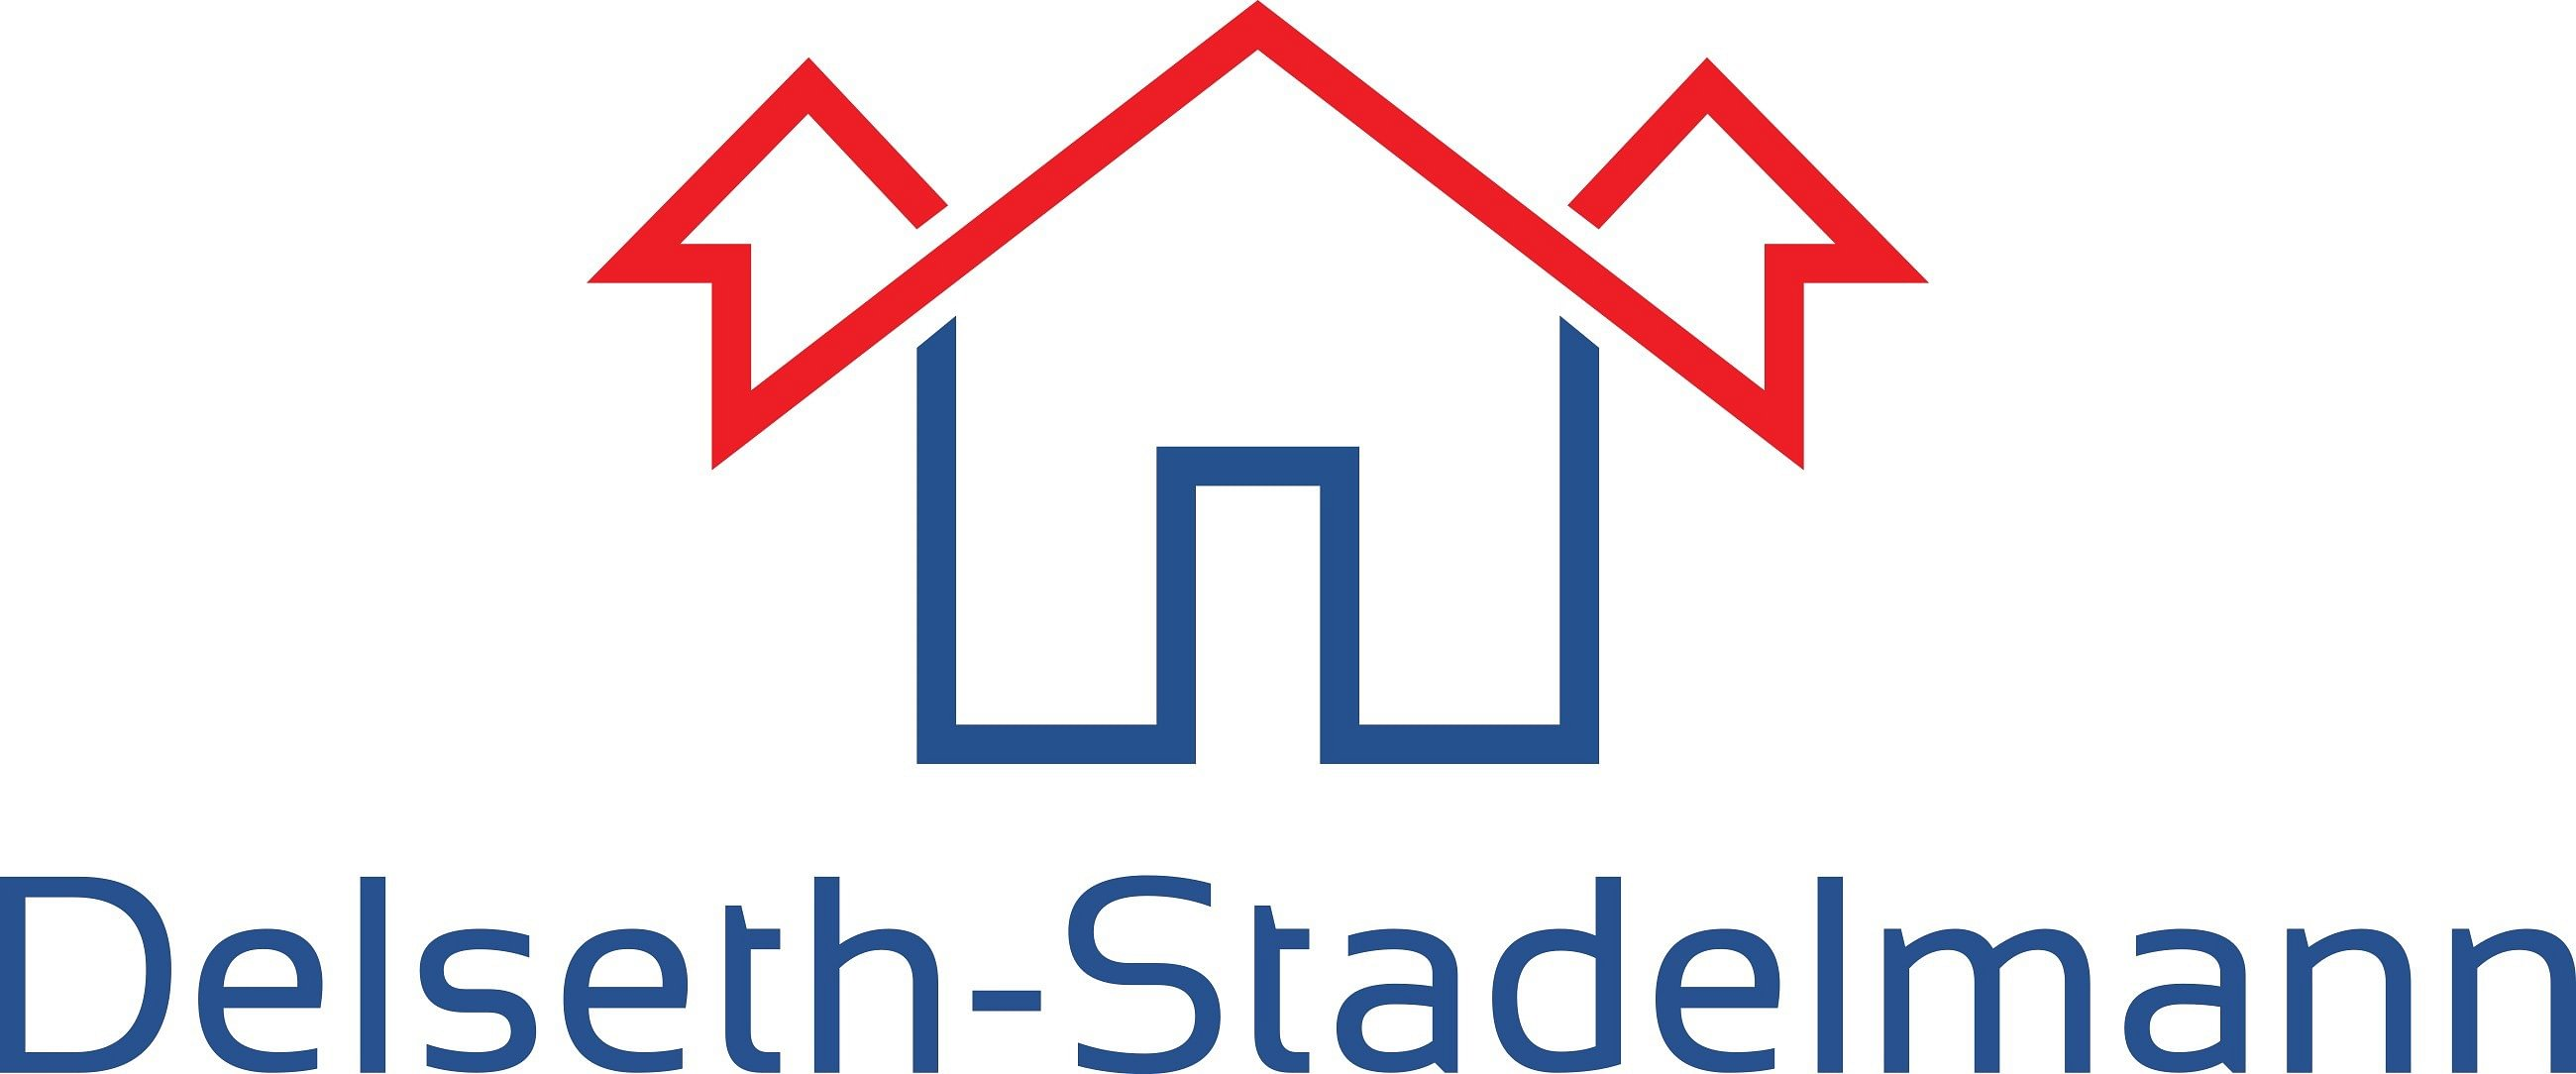 Delseth-Stadelmann Construction Sàrl